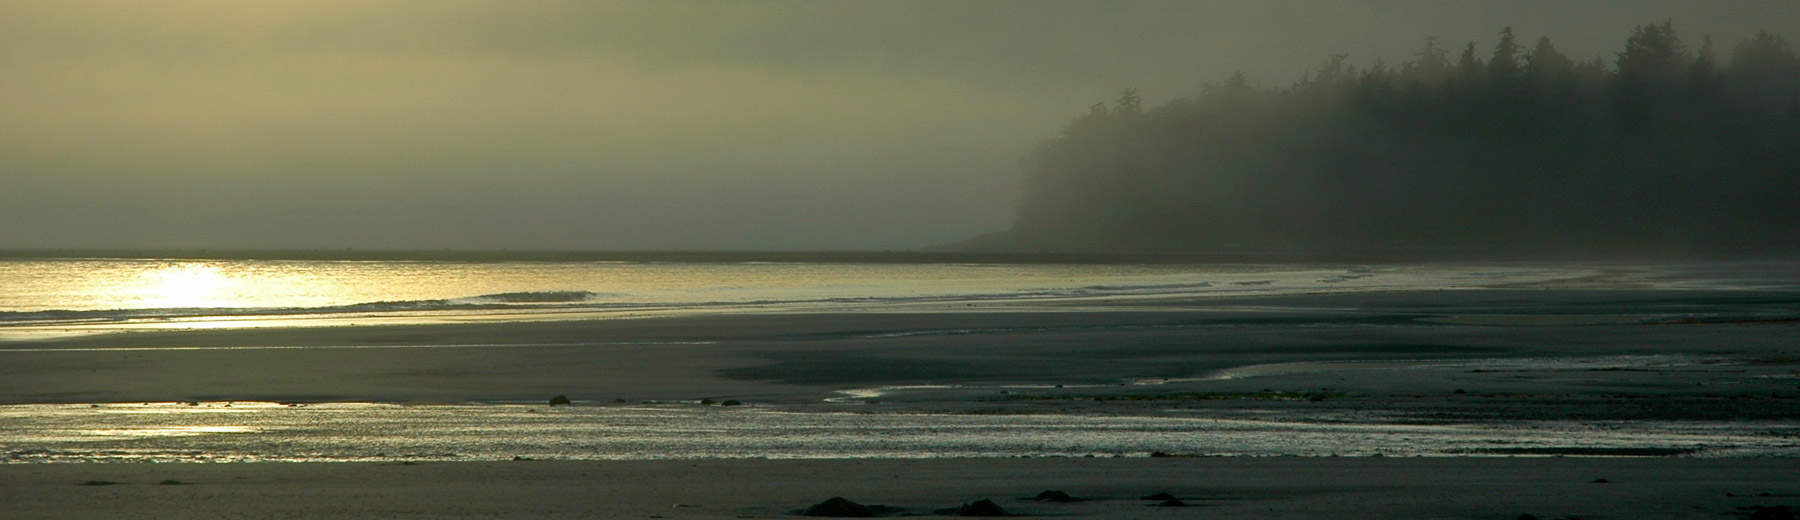 Friendly cove, Nootka Island, BC